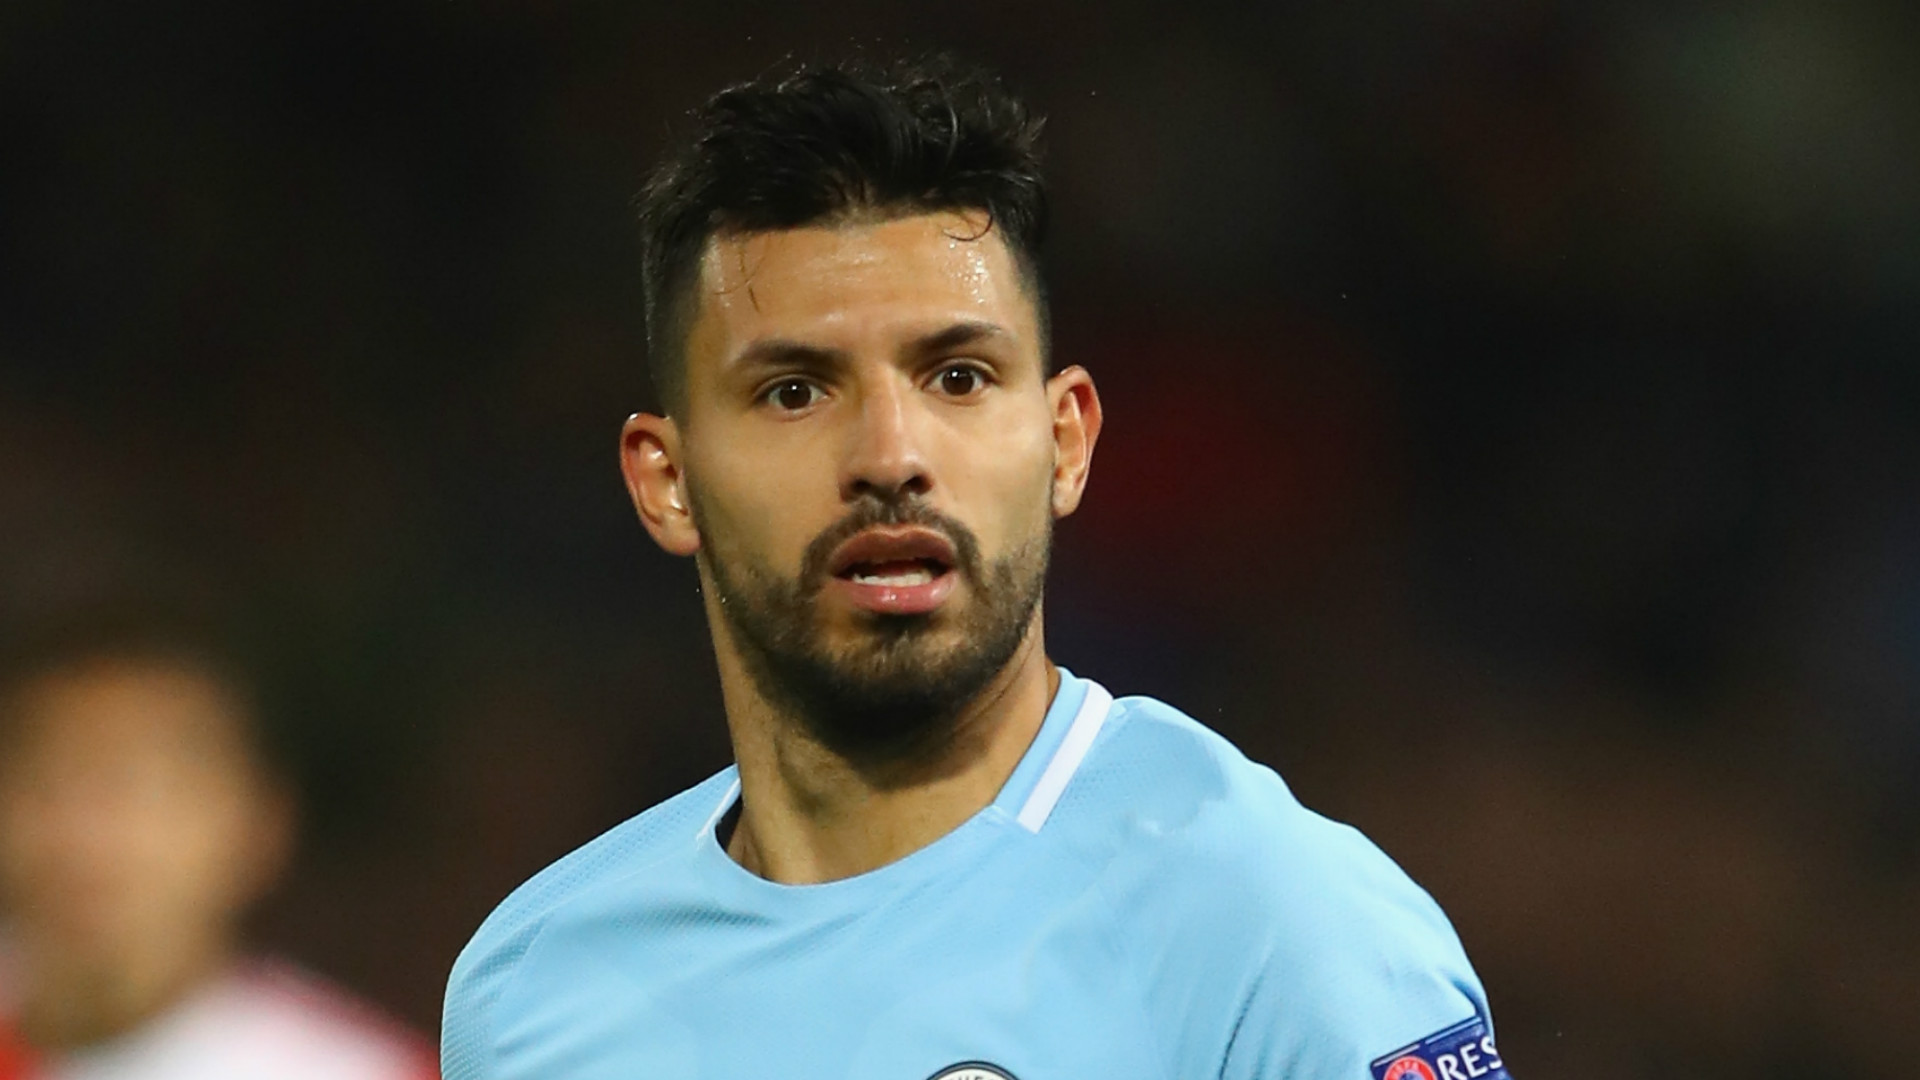 Sergio Aguero: Manchester City striker hurt in auto crash